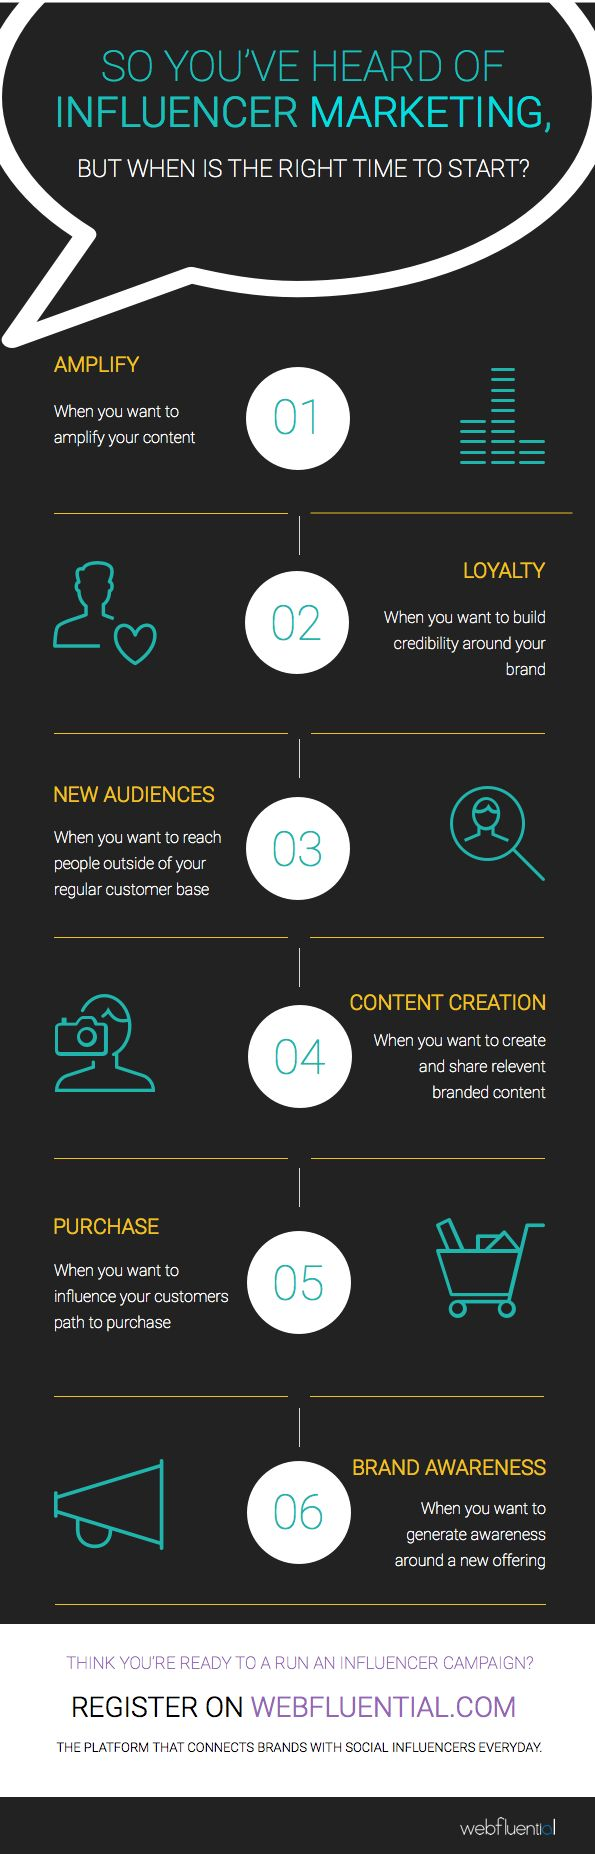 When Should You Start Influencer Marketing? [INFOGRAPHIC]